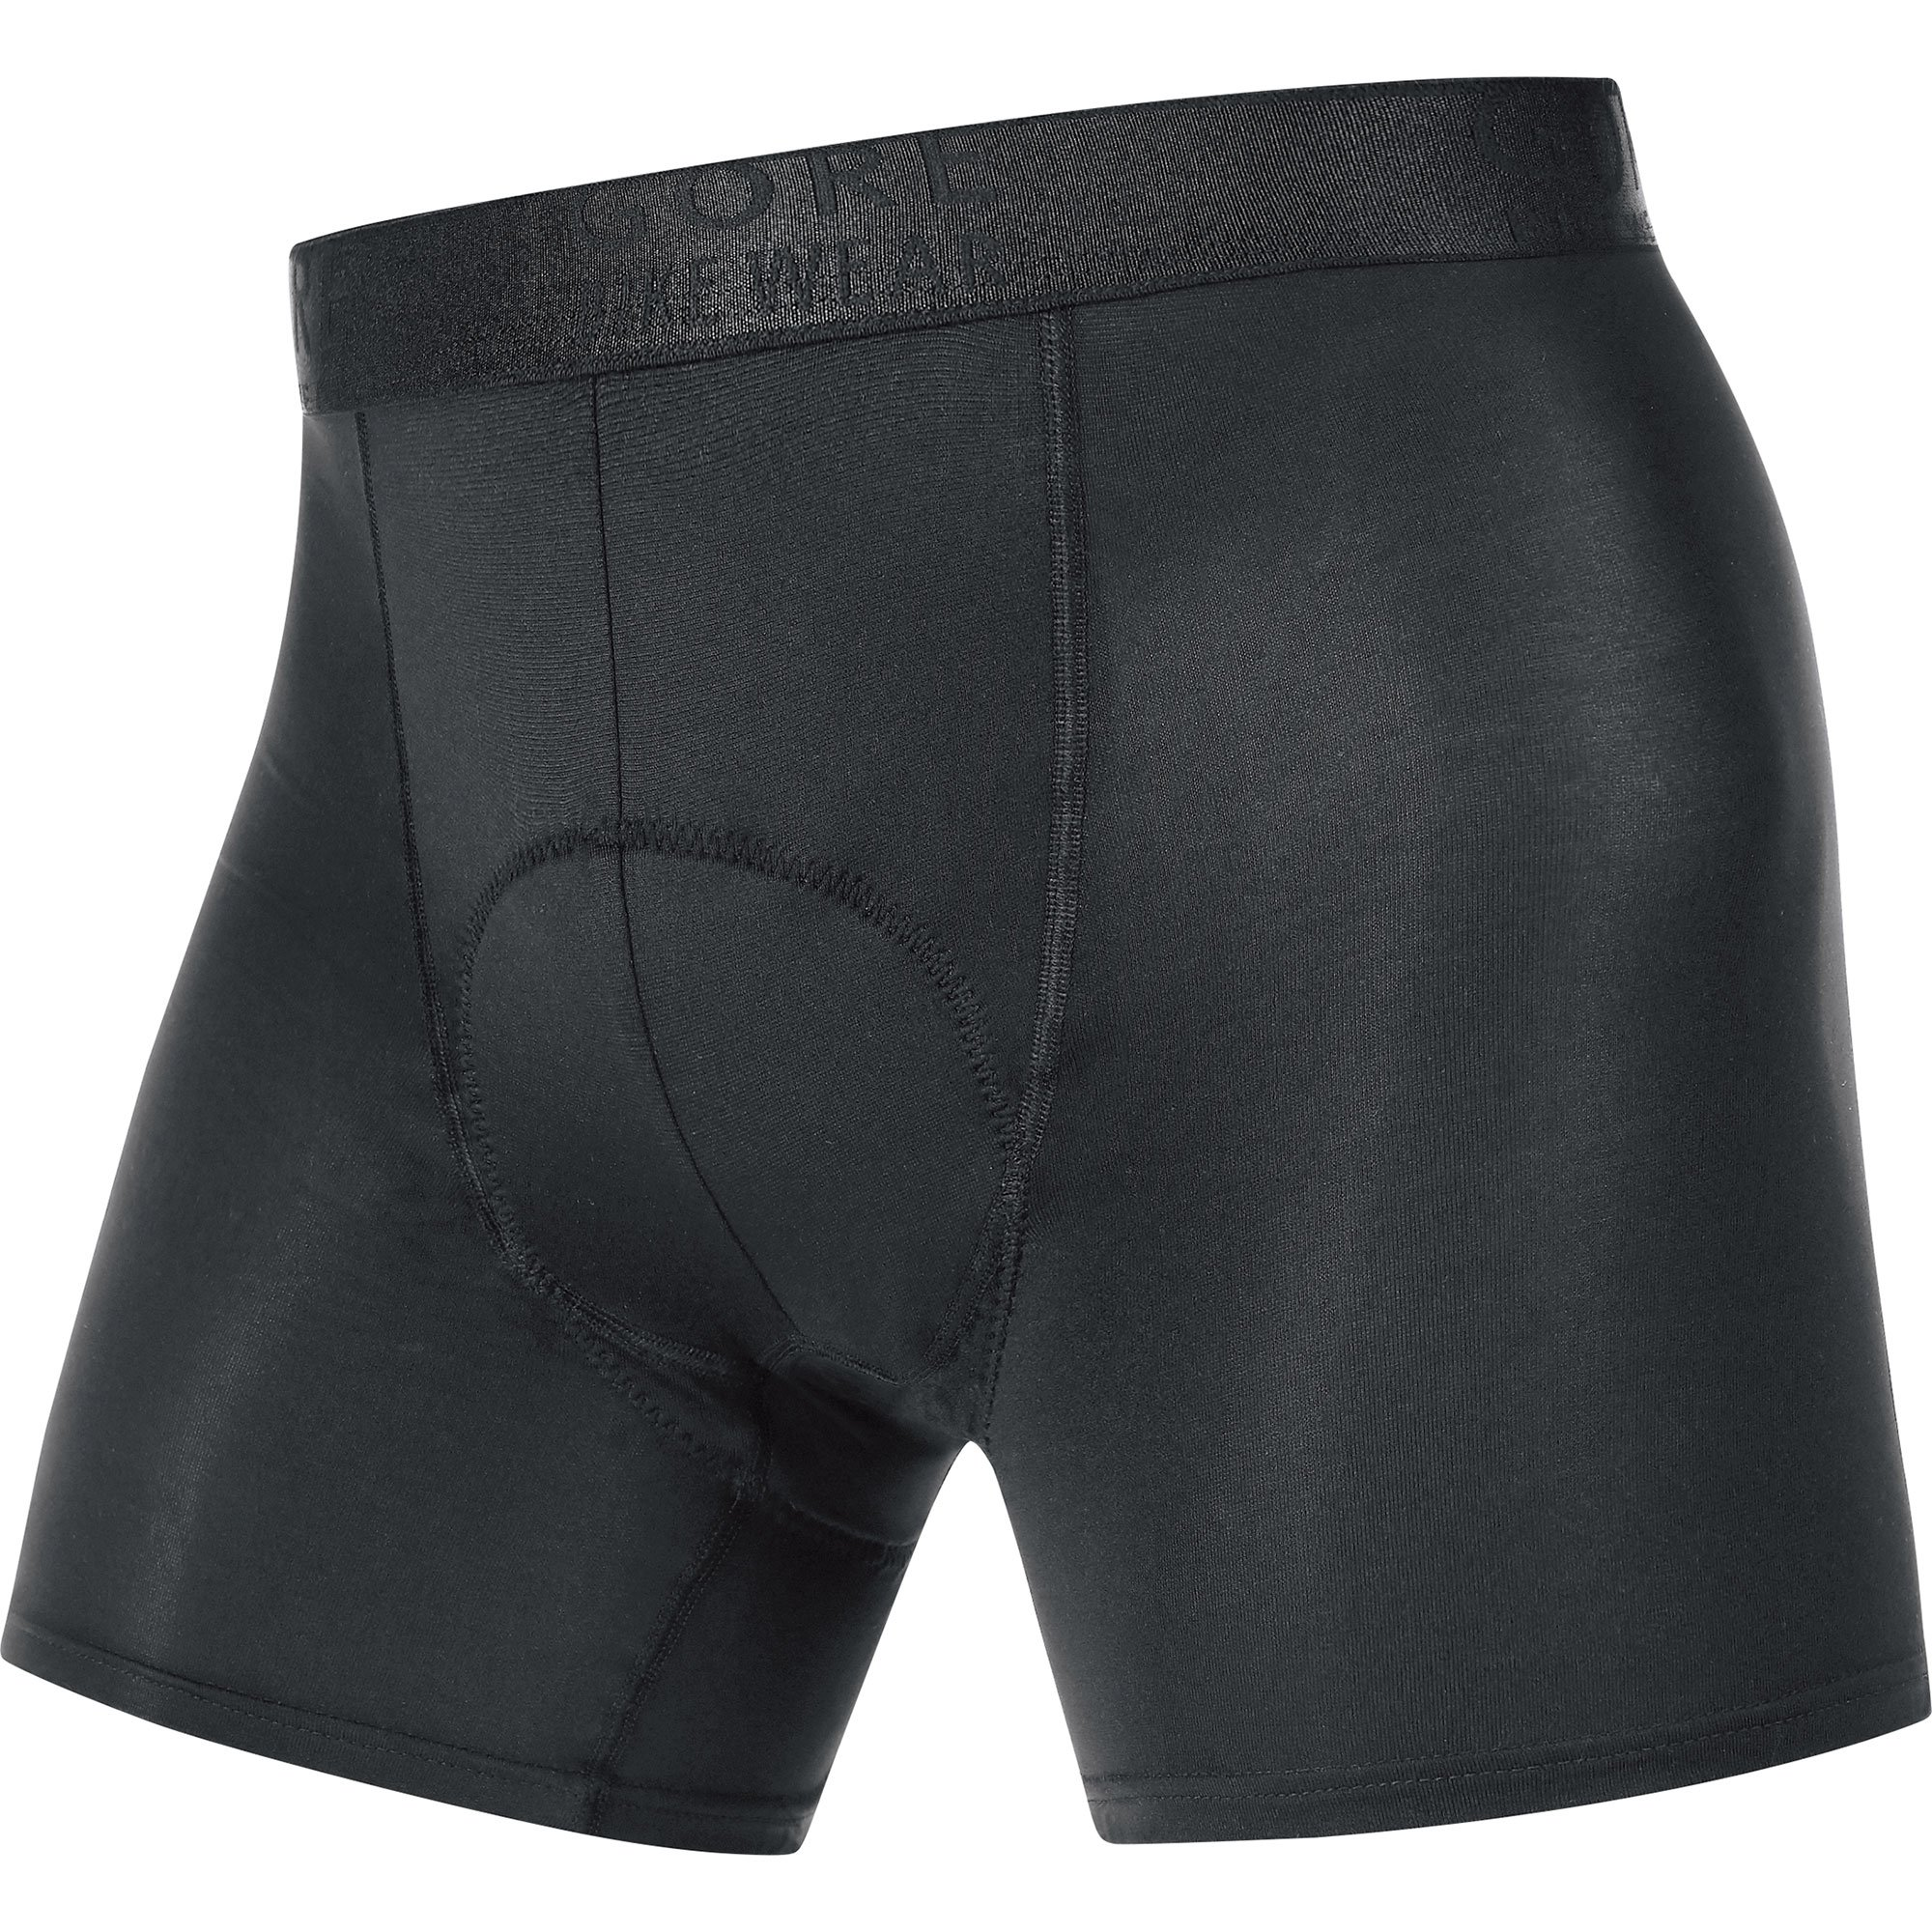 Gore Bike WEAR Men's Base Layer Boxer Shorts+, Black, Small by GORE WEAR